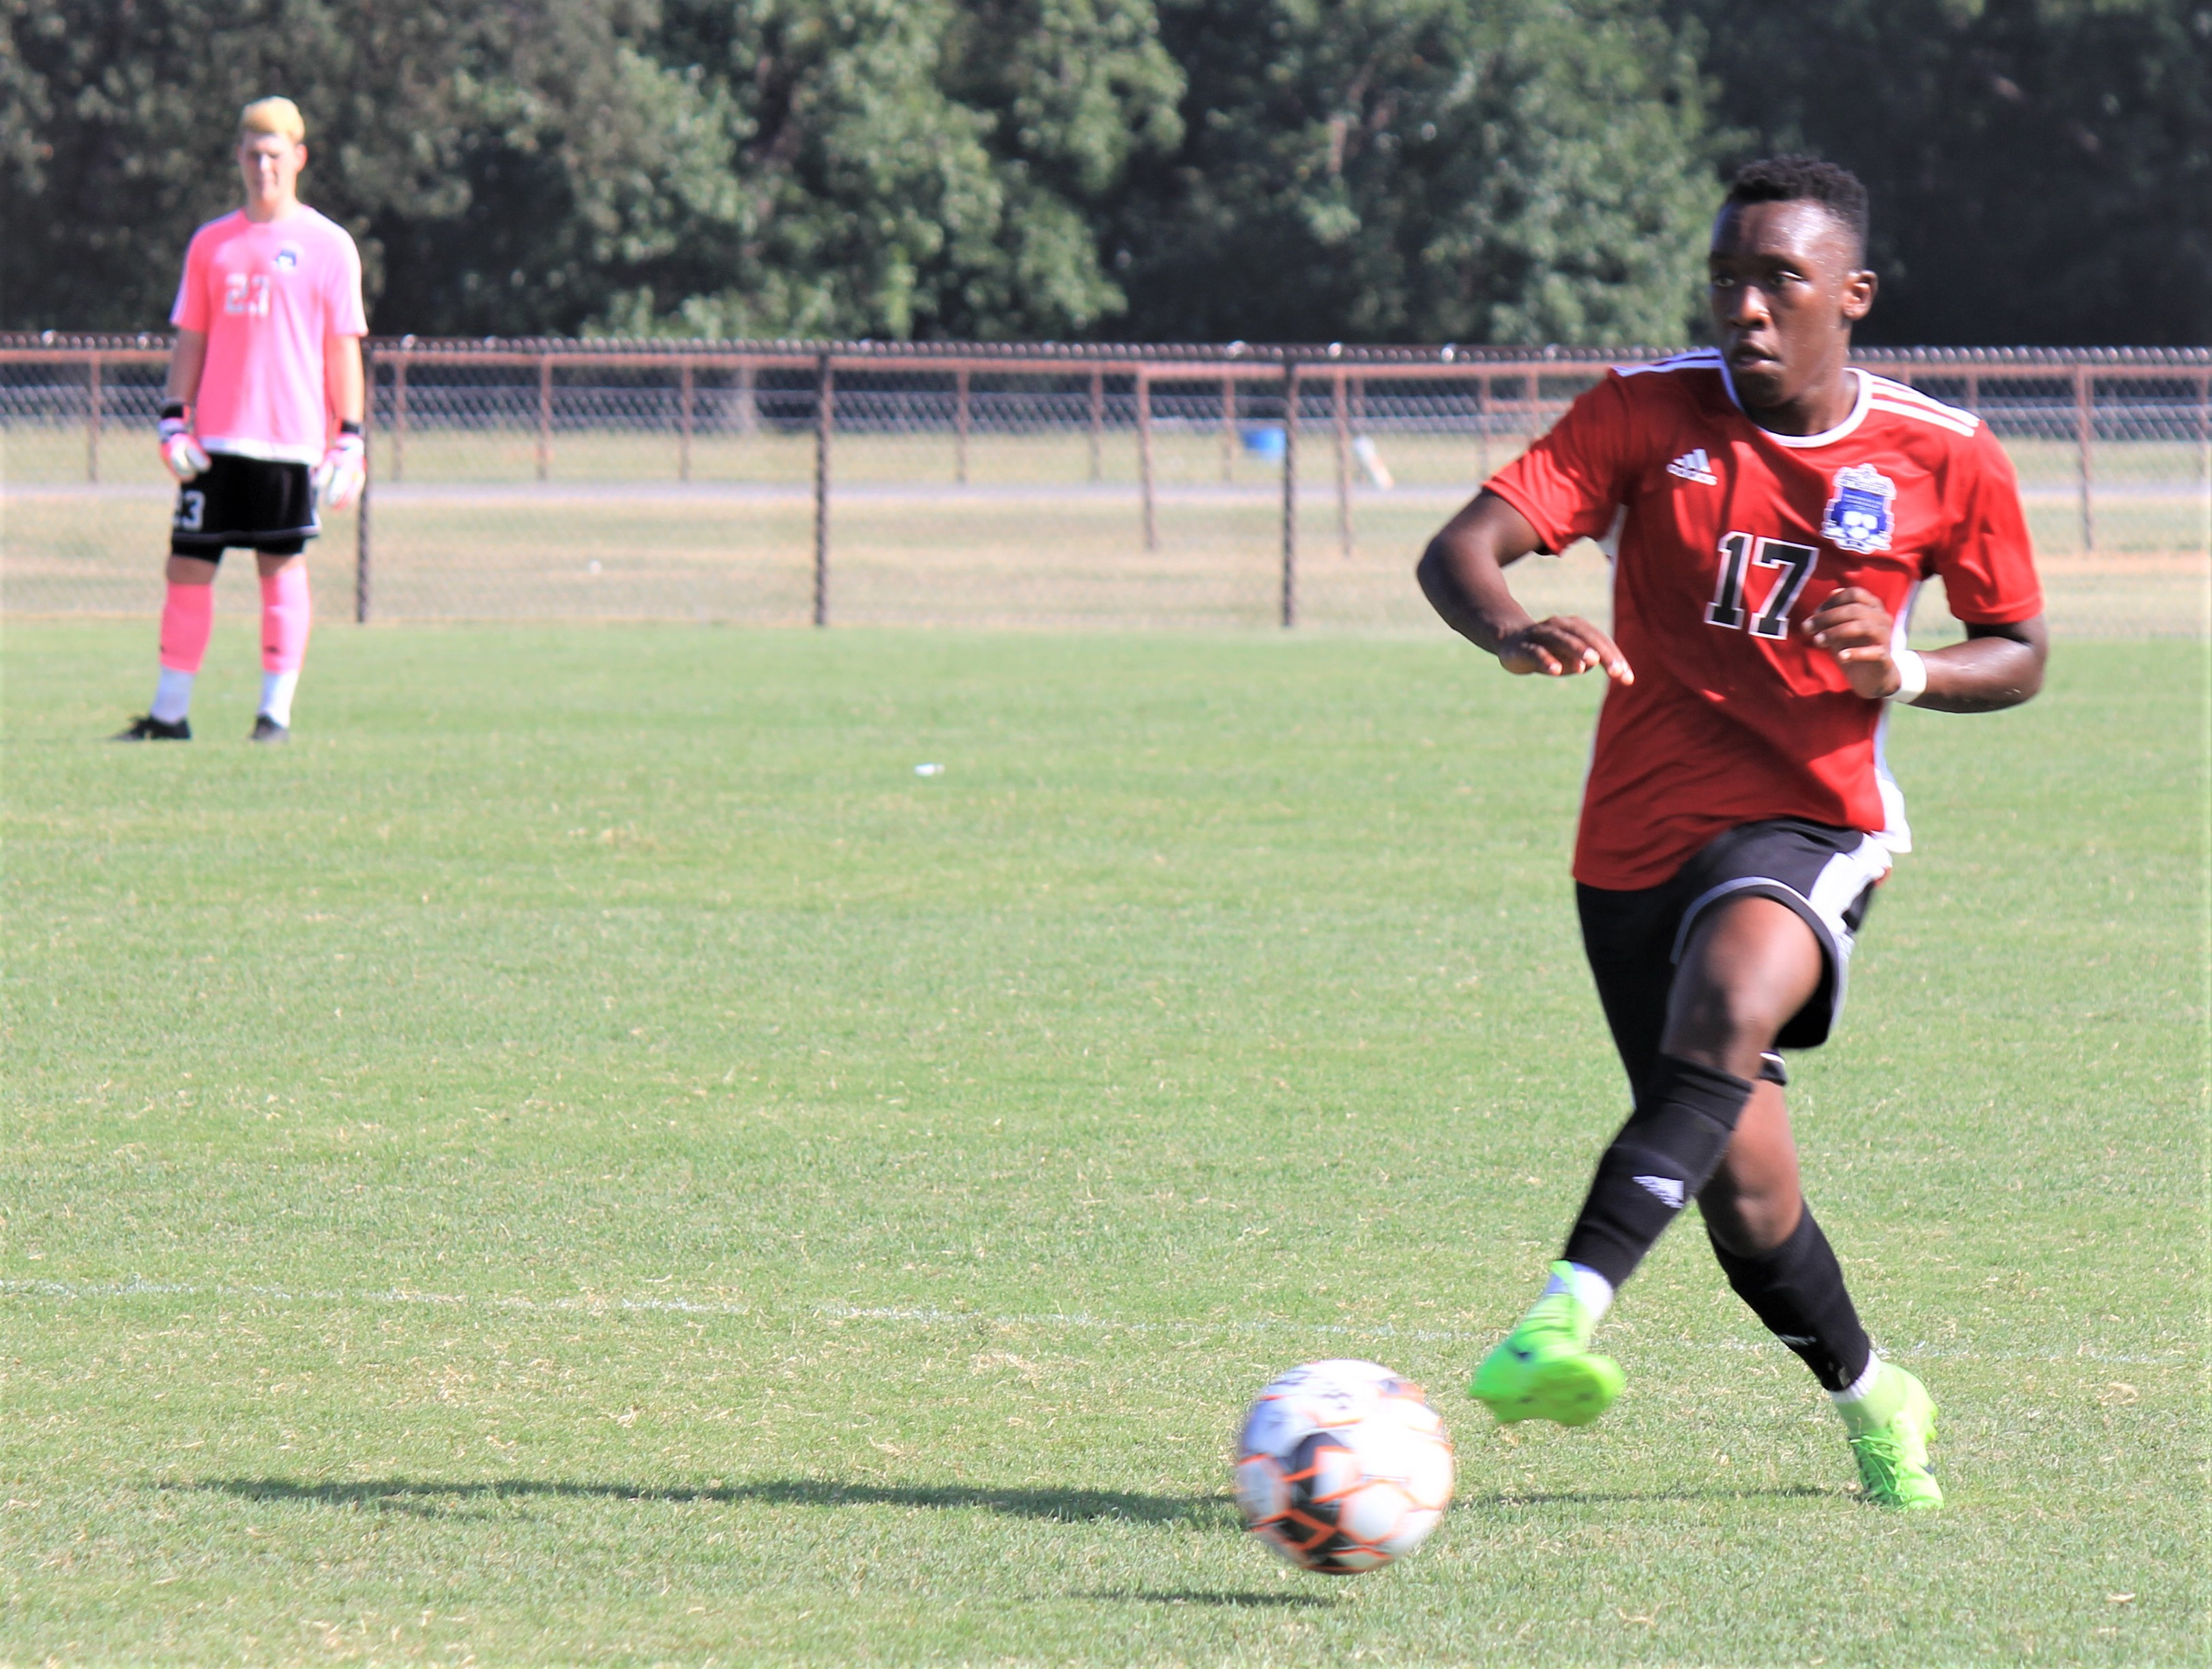 MSC Women's and Men's Soccer kick off seasons with wins at home and on the road